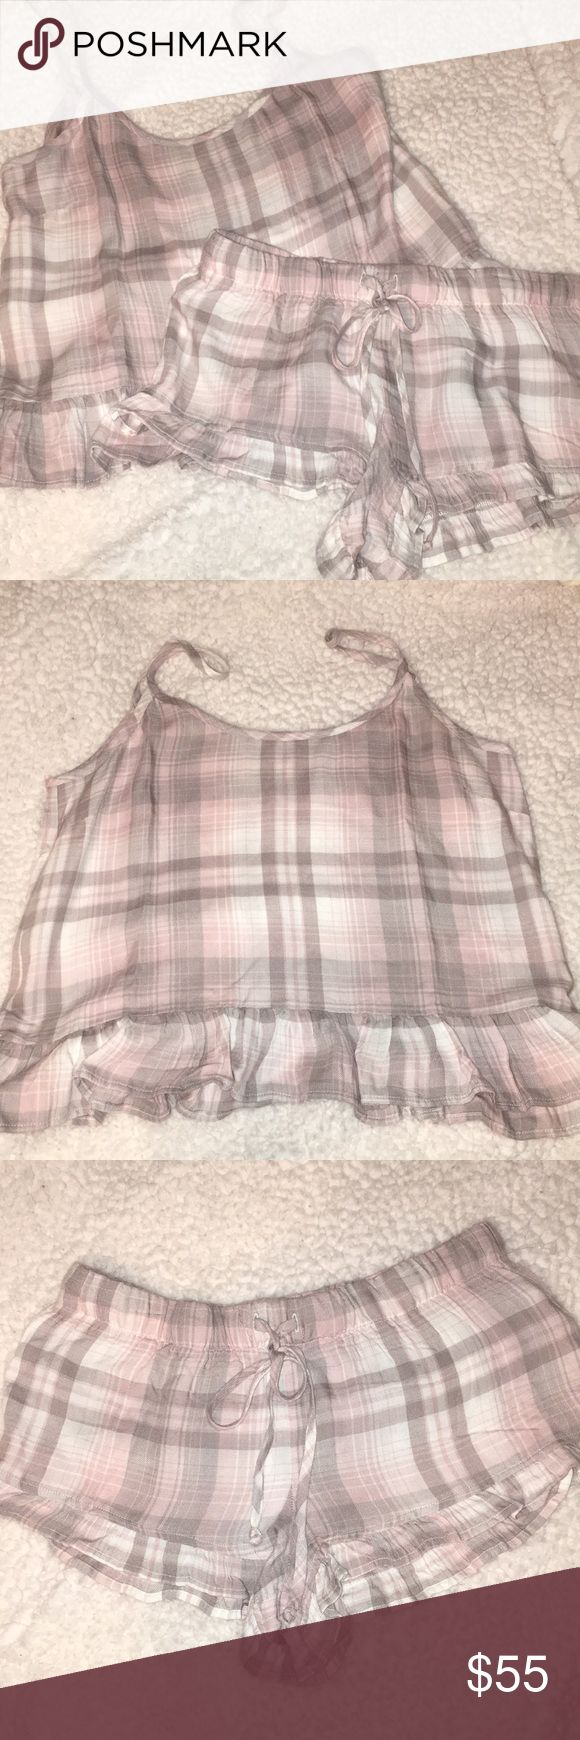 NWOT ANTHRO CLOTH & STONE PJ SET - SIZE S So adorable and comfy!  New without paper tags, but plastic tags still intact. Tank and shirts with adorable ruffle at the hem.   From a smoke free home.  Each piece was originally $48.  Offers considered! Anthropologie Intimates & Sleepwear Pajamas